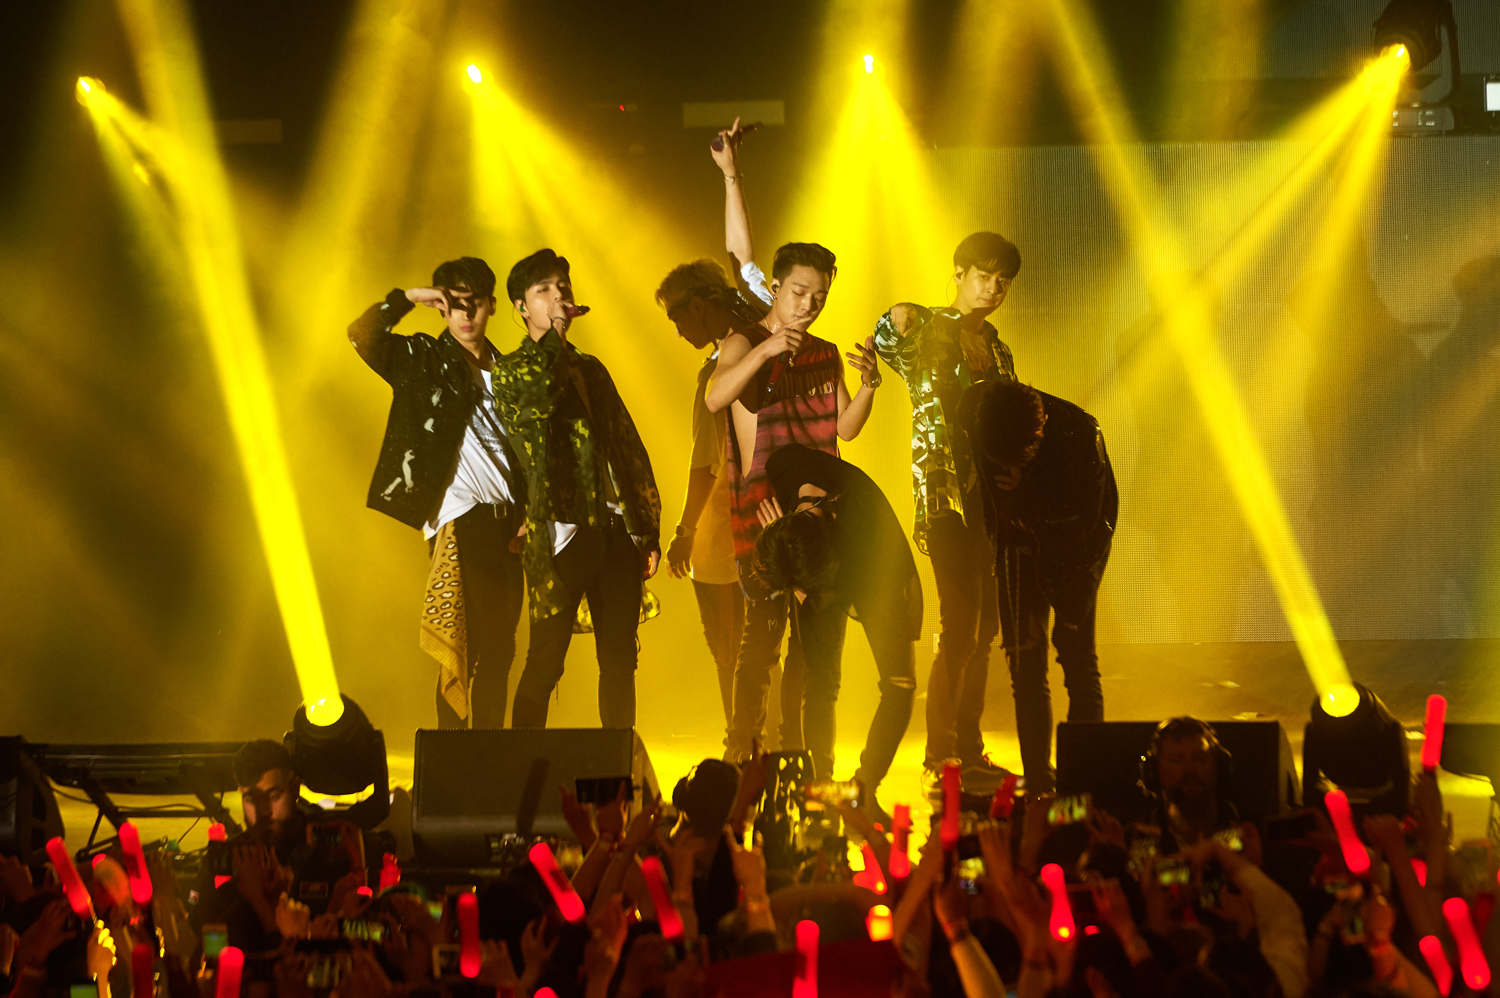 Live Review: iKON 'Continue' Tour – Festival Hall, Melbourne (27.10.2018)